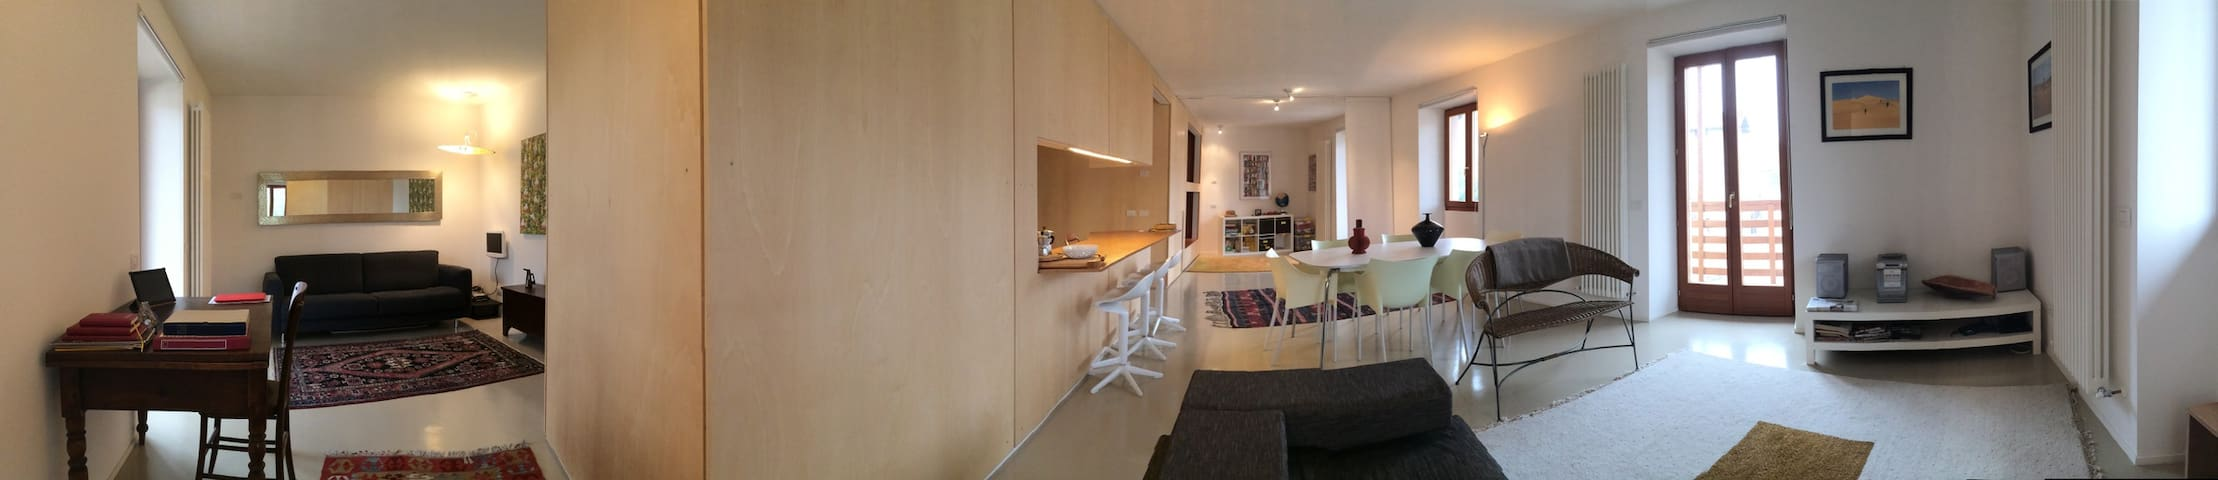 Your Design Apartment in the Alps - Lasino - Appartement